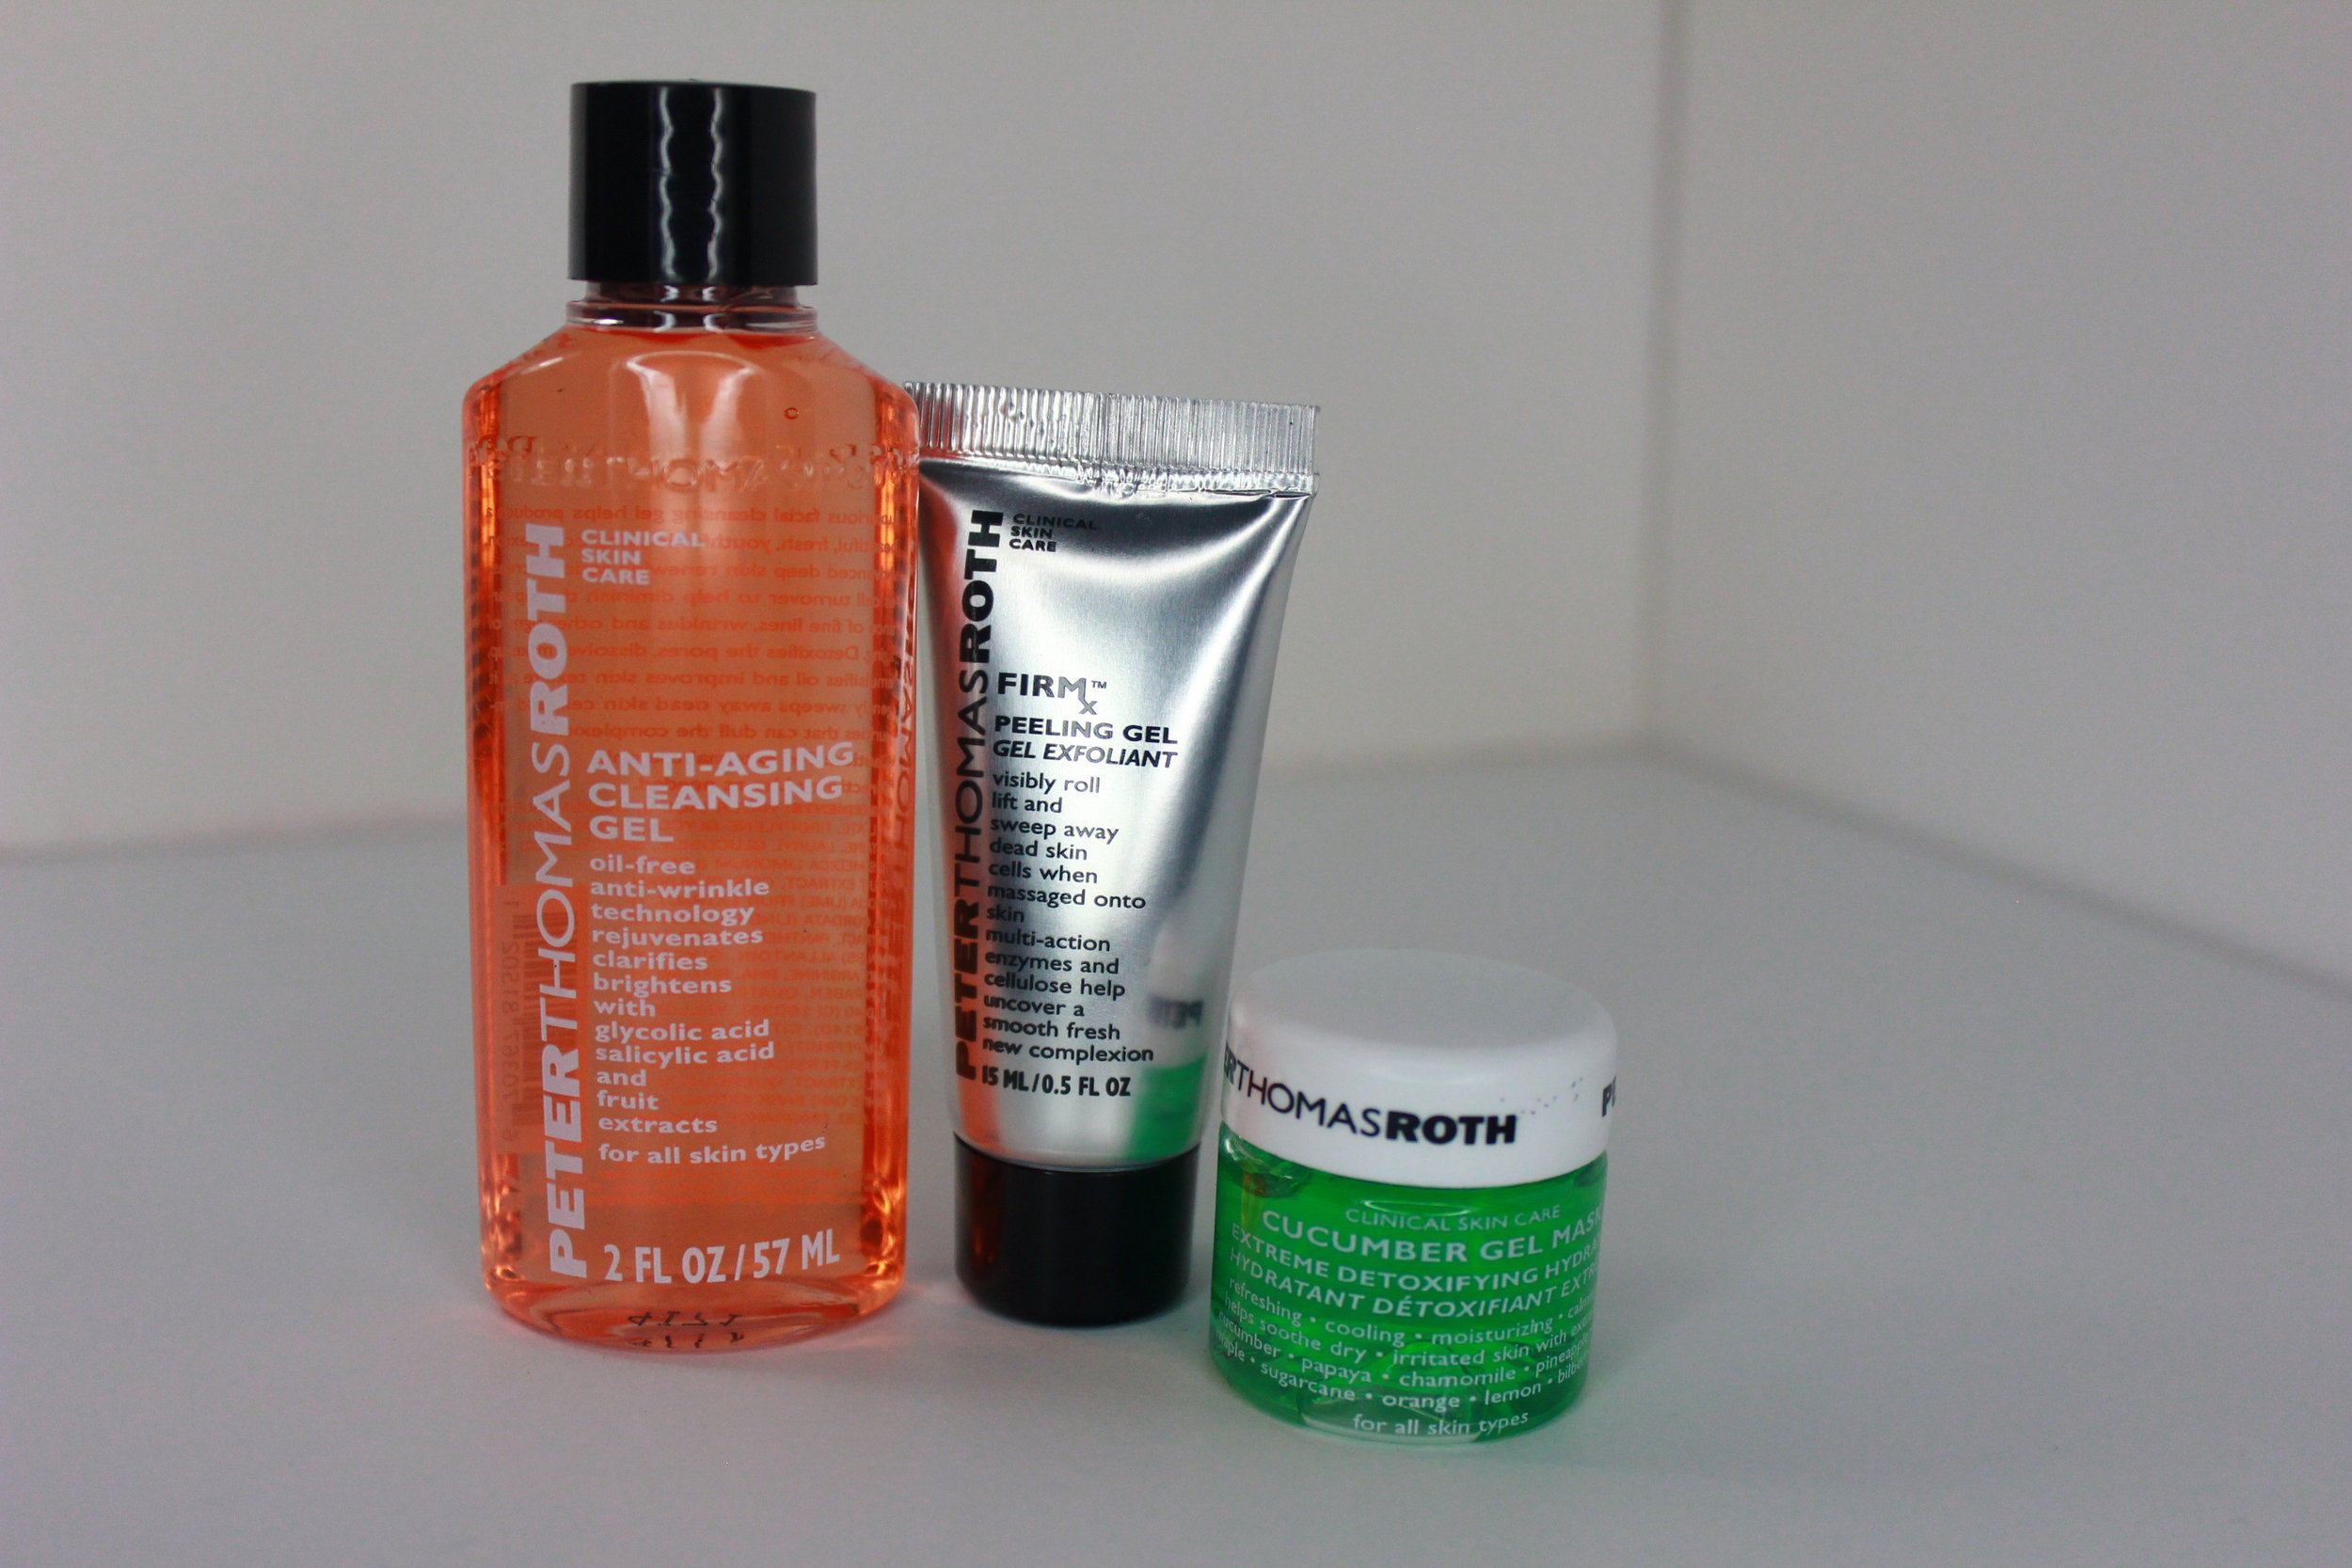 Peter Thomas Roth 500 Point Perk